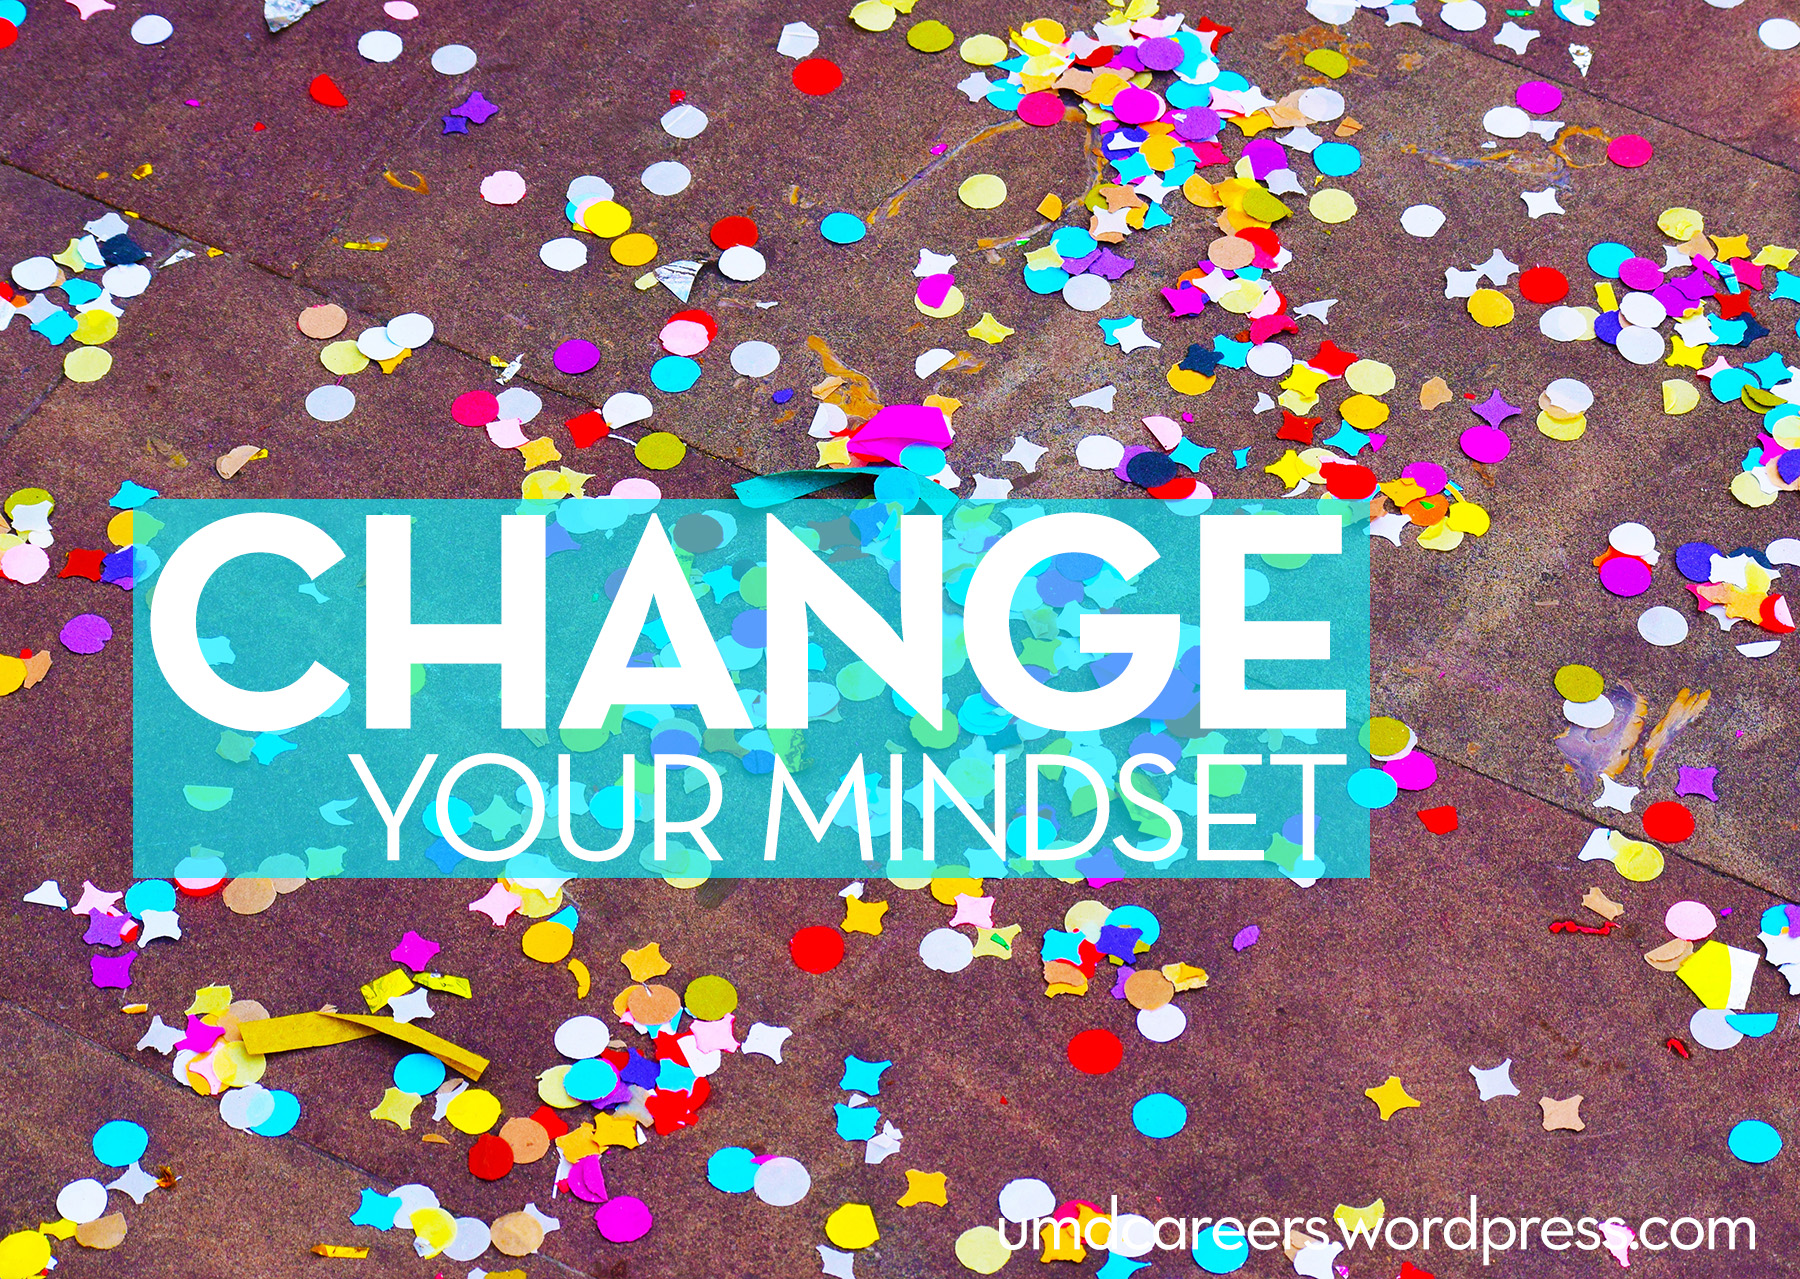 Image: colored confetti on brown stone background Text: Change your Mindset